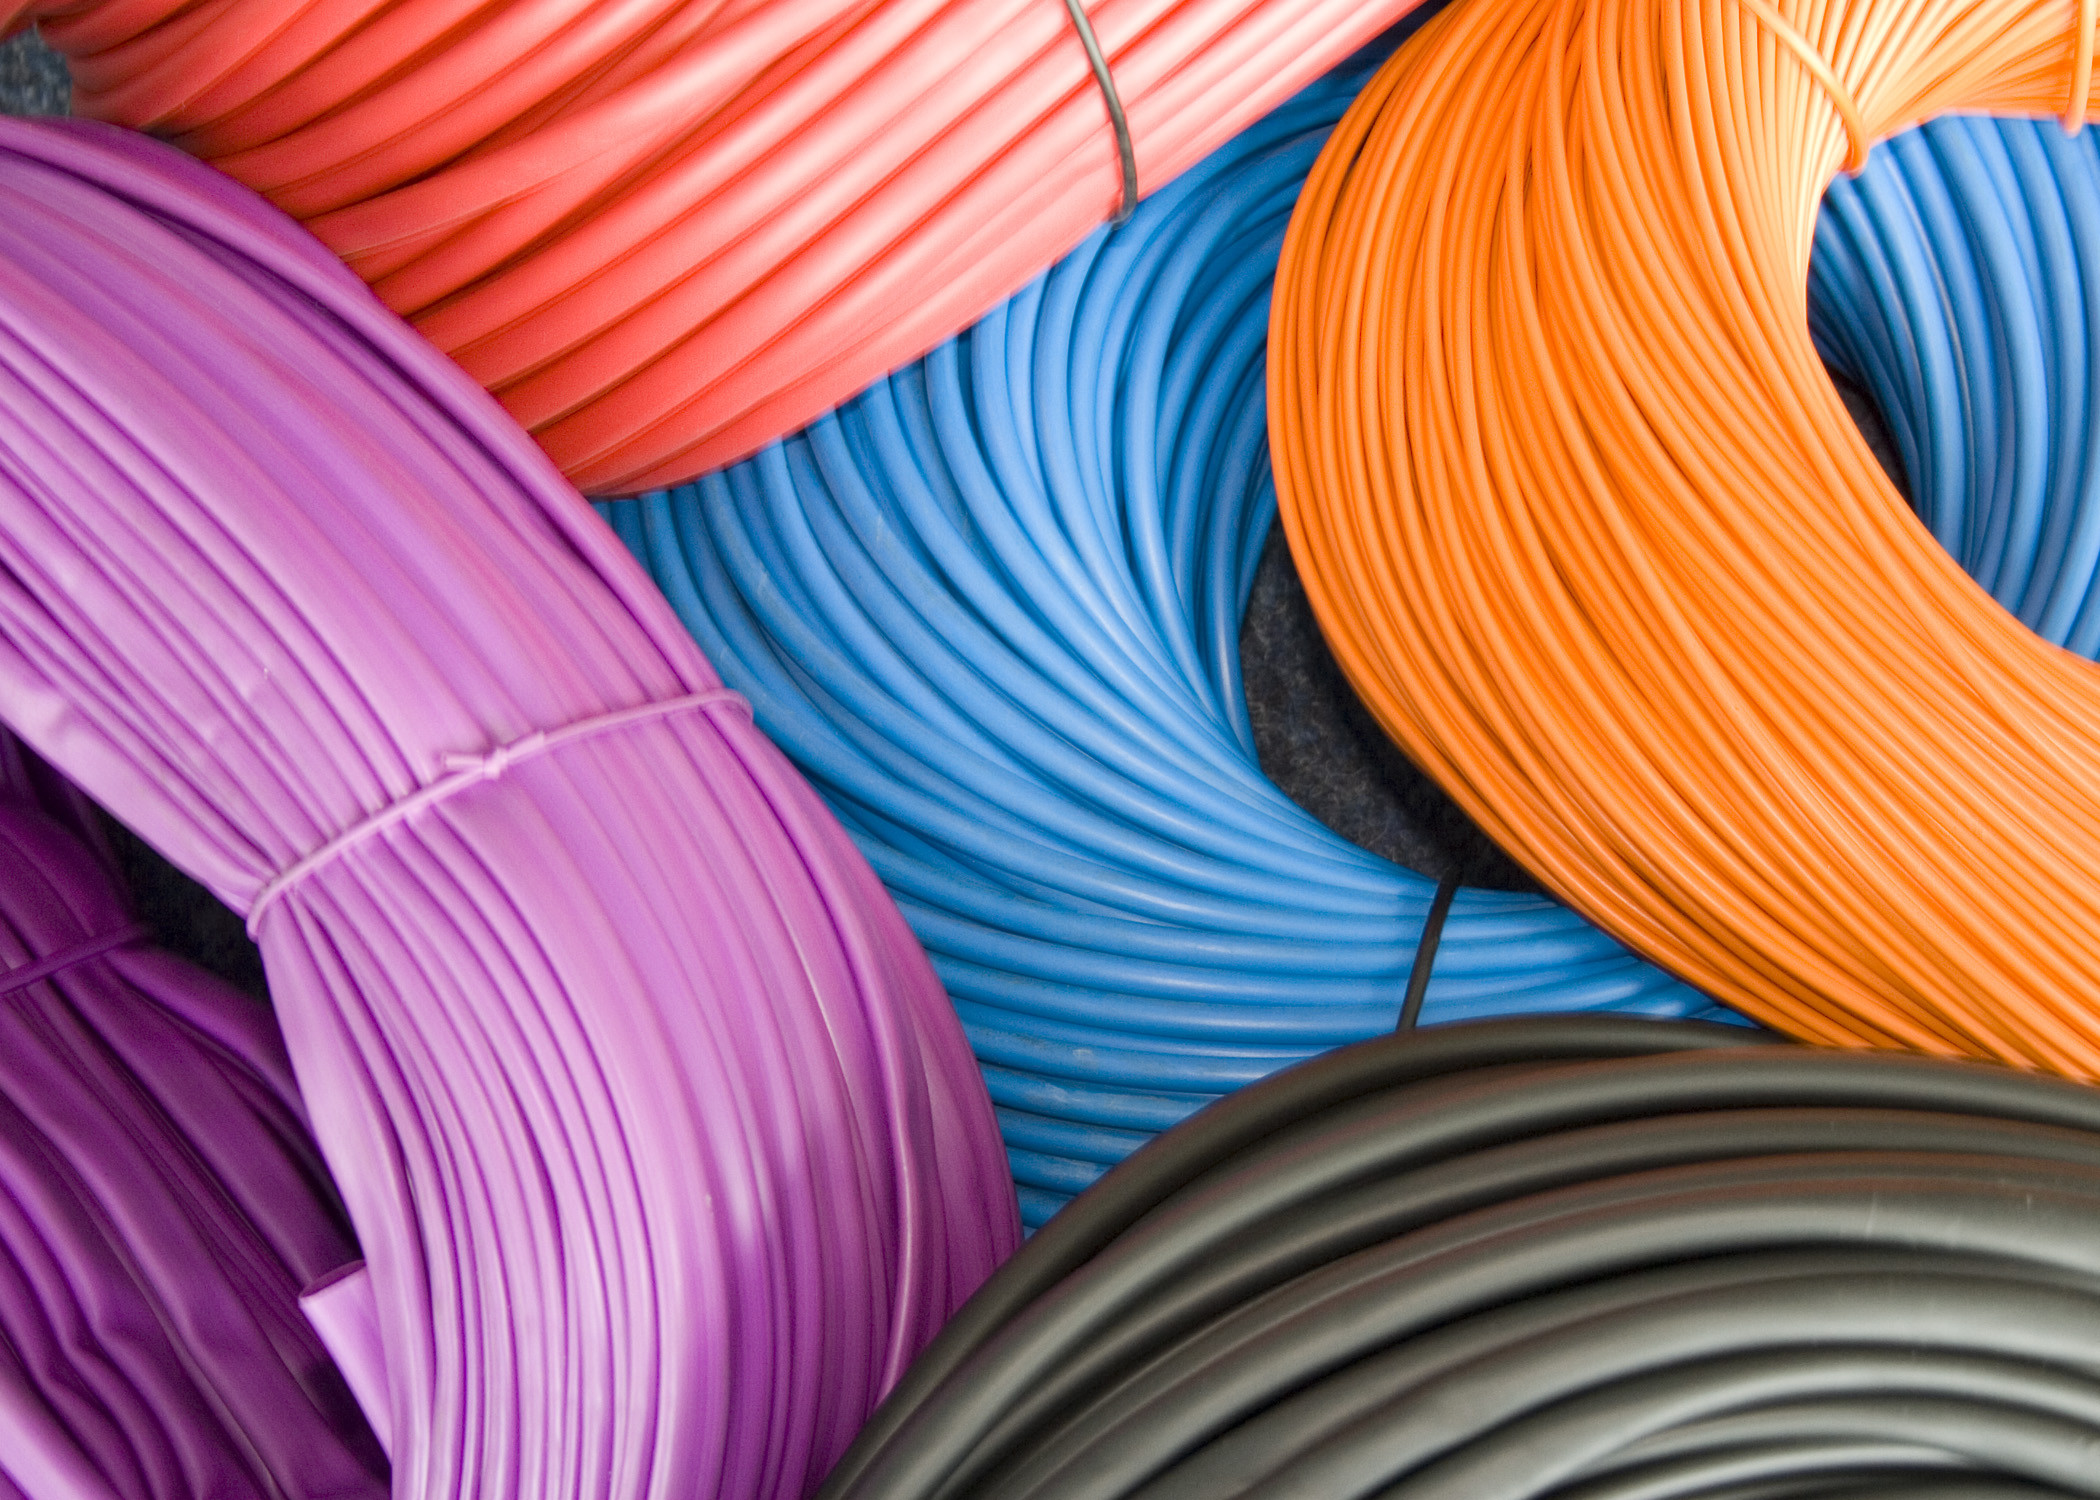 PVC Sleeving size 15.0mmx 0.5mm Wall